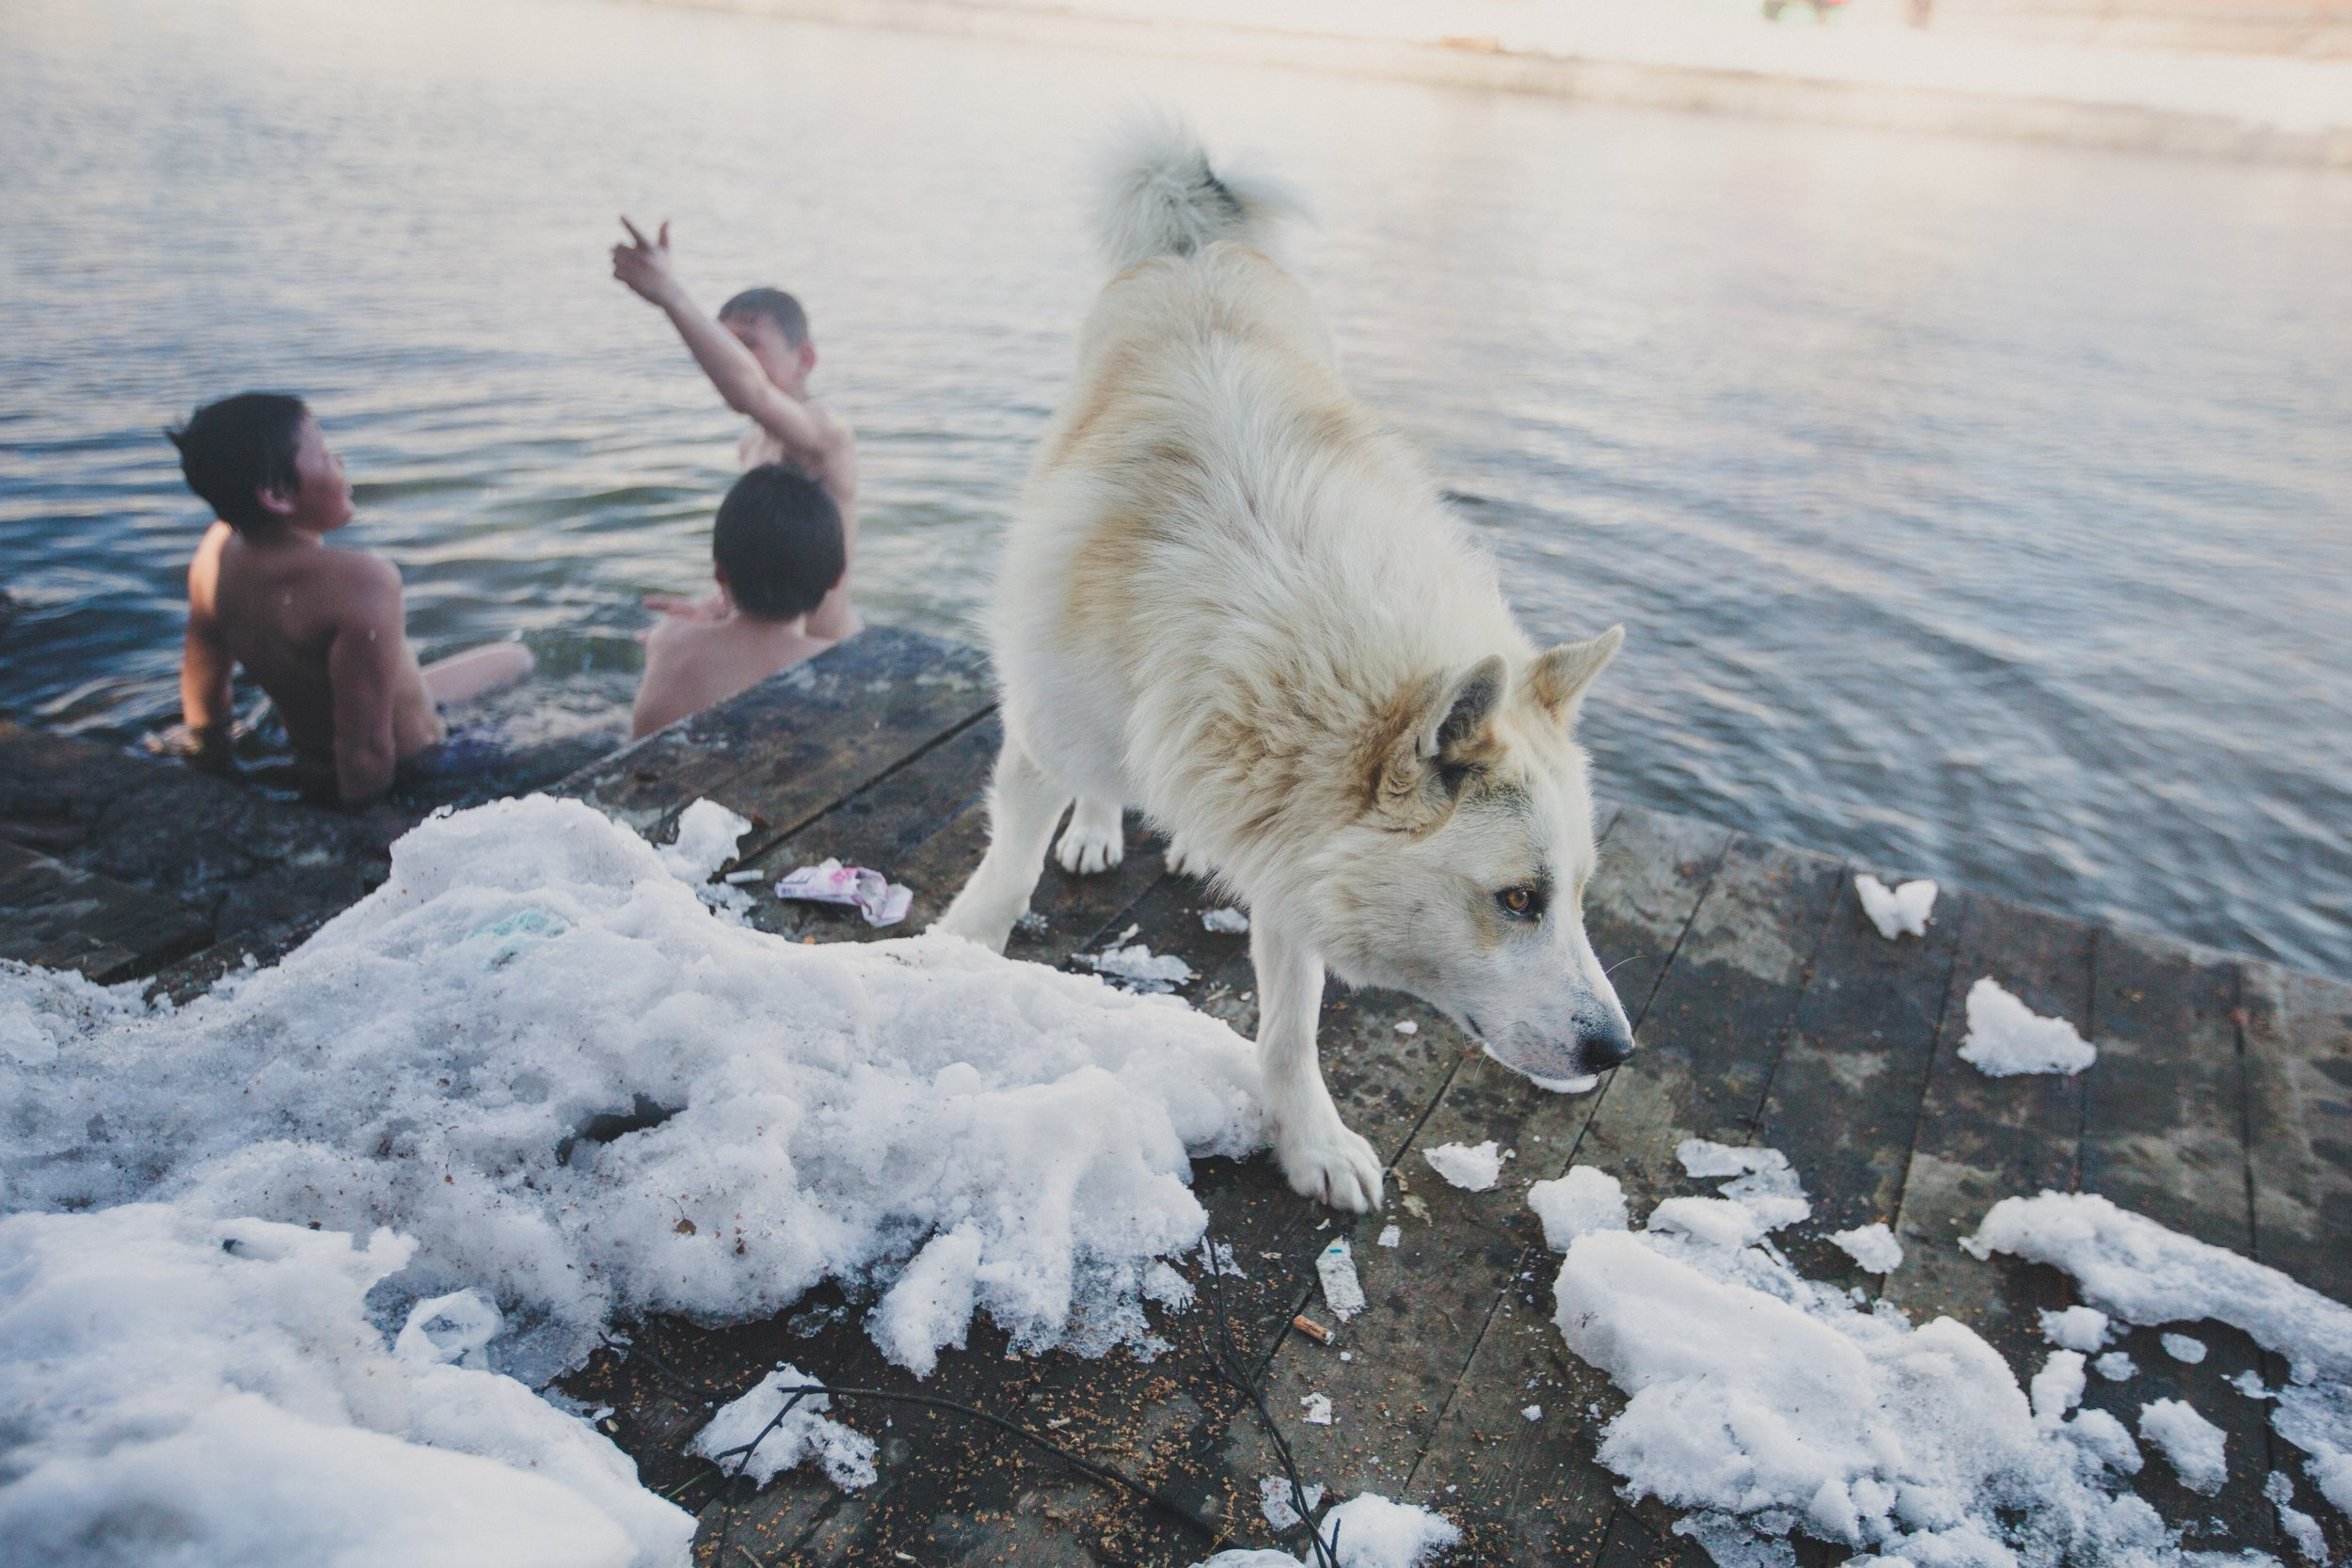 A dog waits near one of Kamchatka's many natural hot springs, while children play in the water.